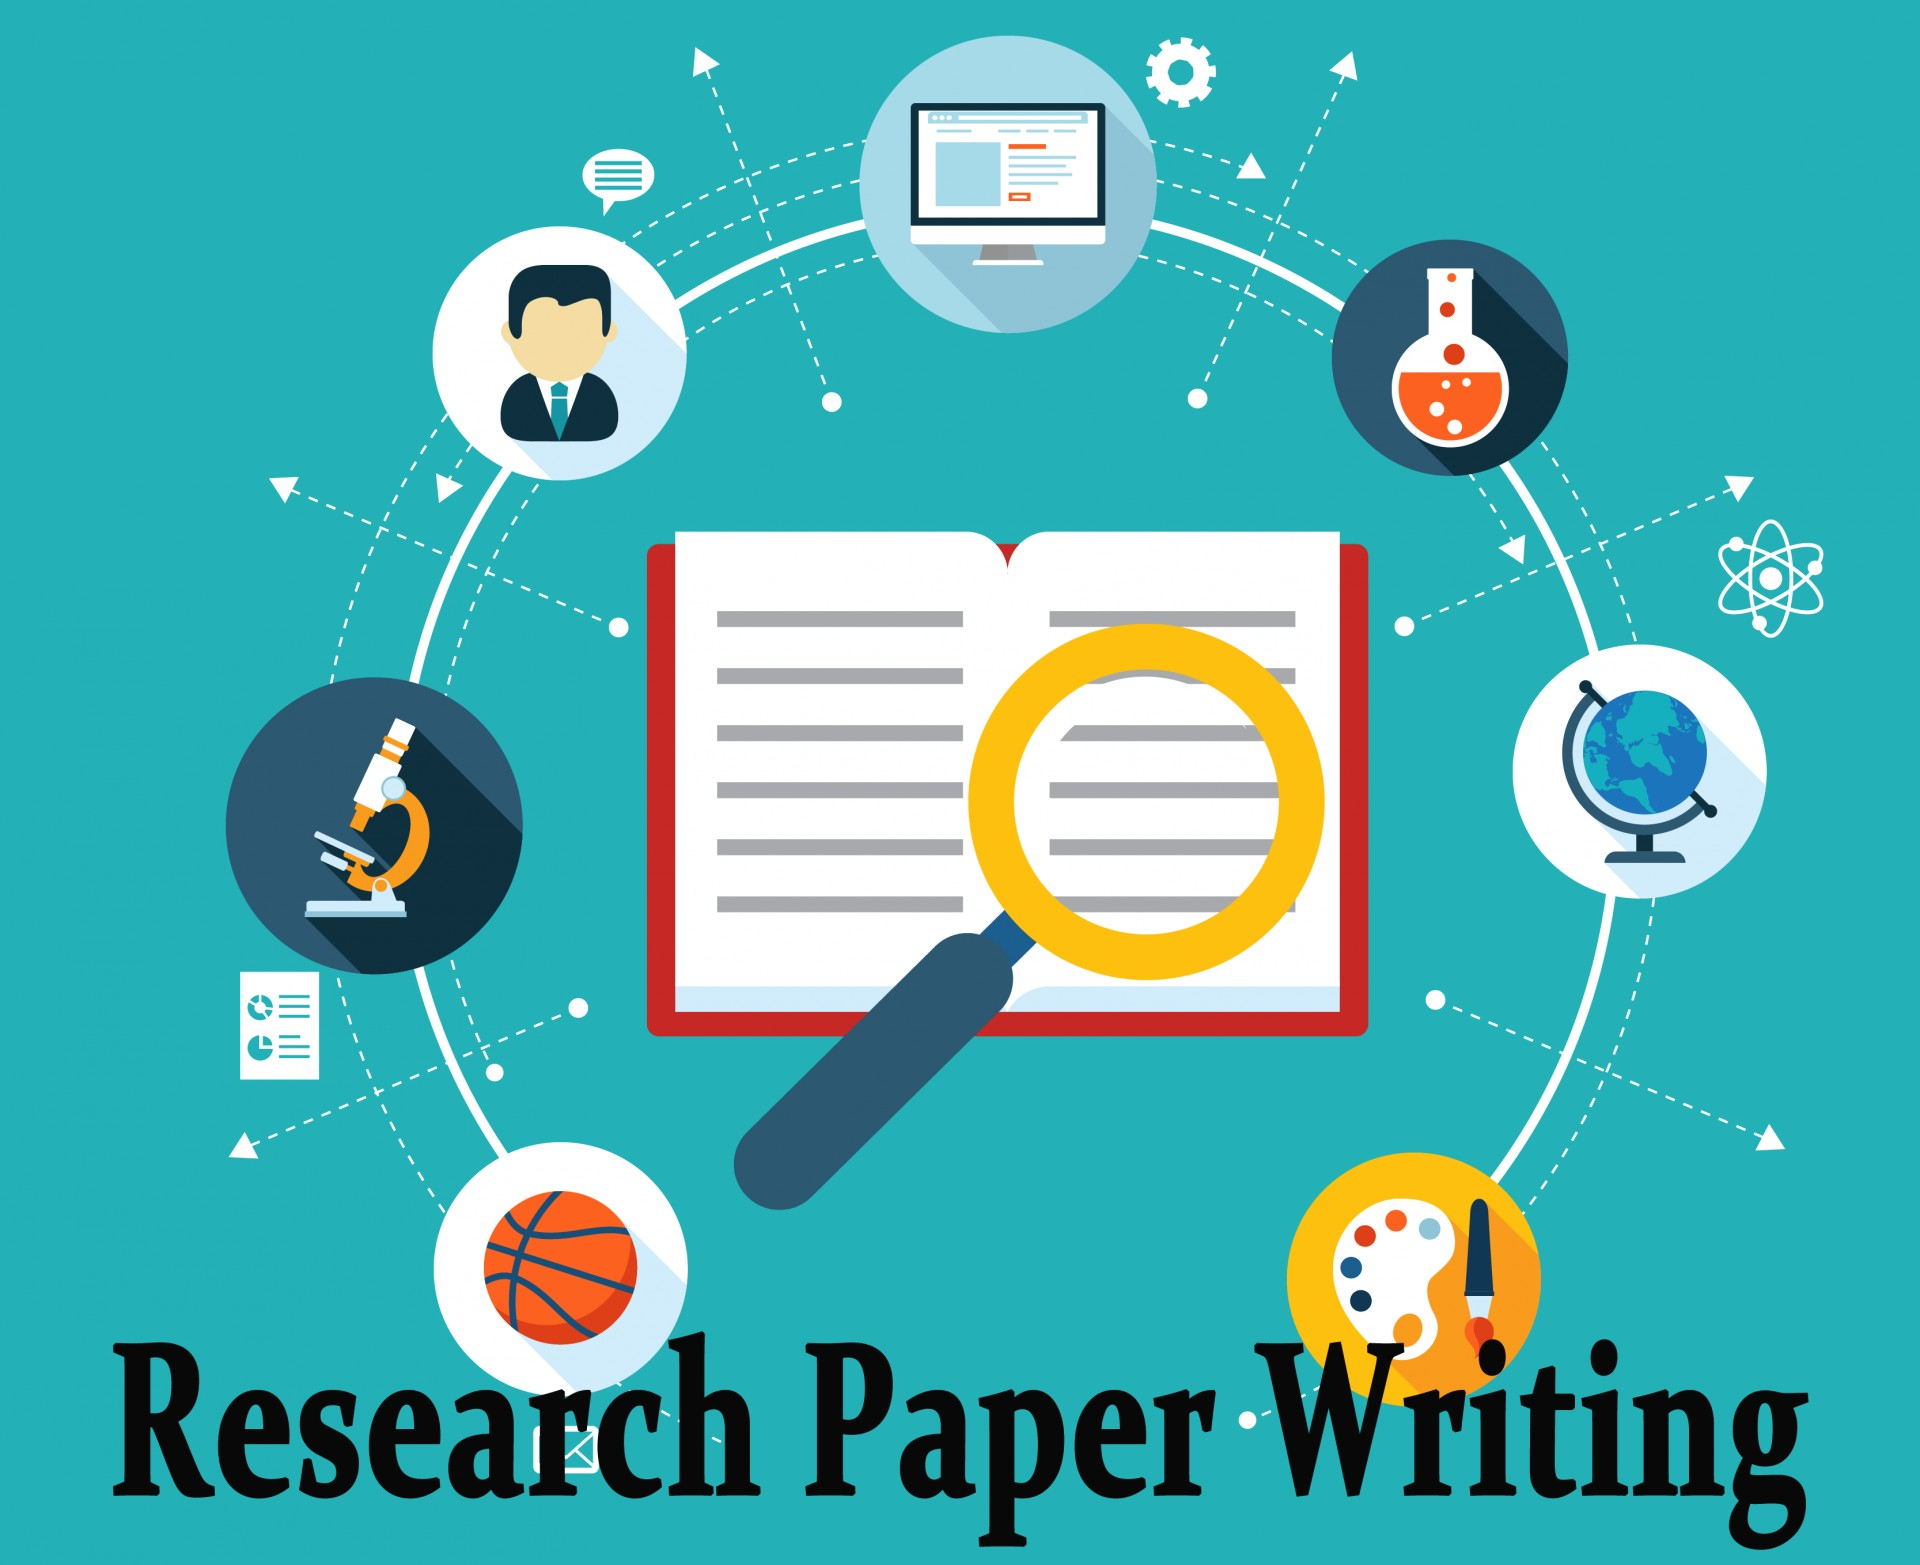 001 Help Writing Research Papers Paper 503 Effective Outstanding My 1920